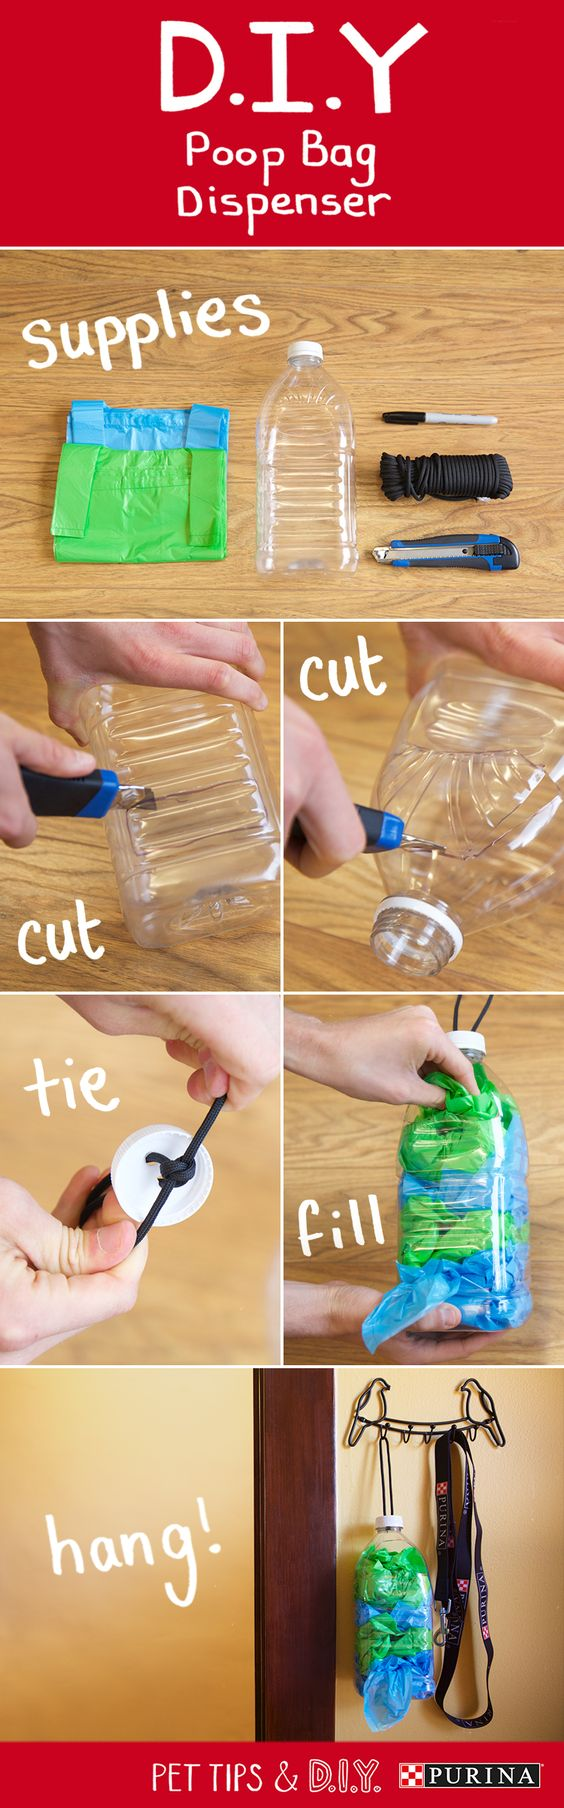 Use this step-by-step guide to make a simple DIY poop bag dispenser for your dog. You'll need a 2 quart plastic bottle, marker, box cutter or scissors, and poop bags. Step 1: Mark your areas to cut on the cap, top, and bottom of the bottle. Step 2: Cut along marked areas. Step 3: Tie a loop through the cap and knot it underneath. Step 4: Screw on the cap and fill your dispenser with poop bags. Now just hang your dispenser on the door, wall rack, or anywhere near your dog's leash…